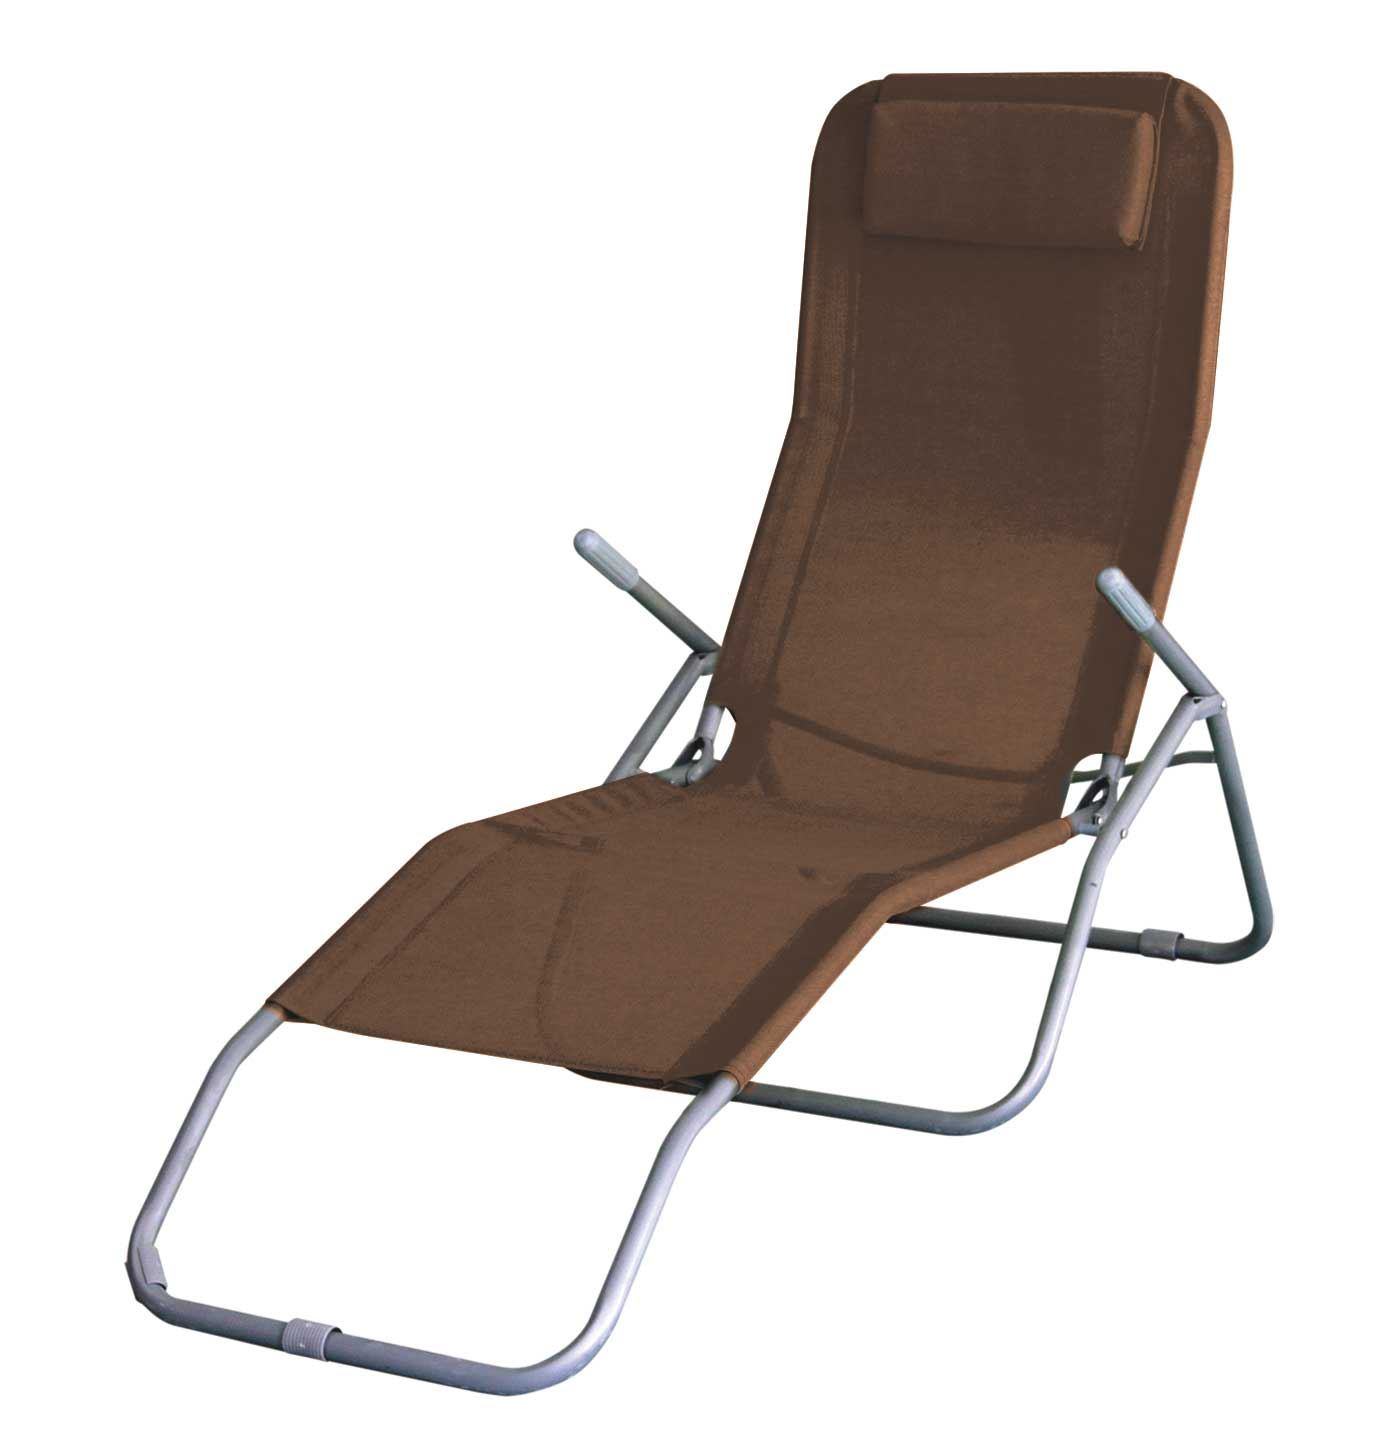 Beach Lounger Chair Folding Sun Lounger Recliner Chair Bed Armrest Garden